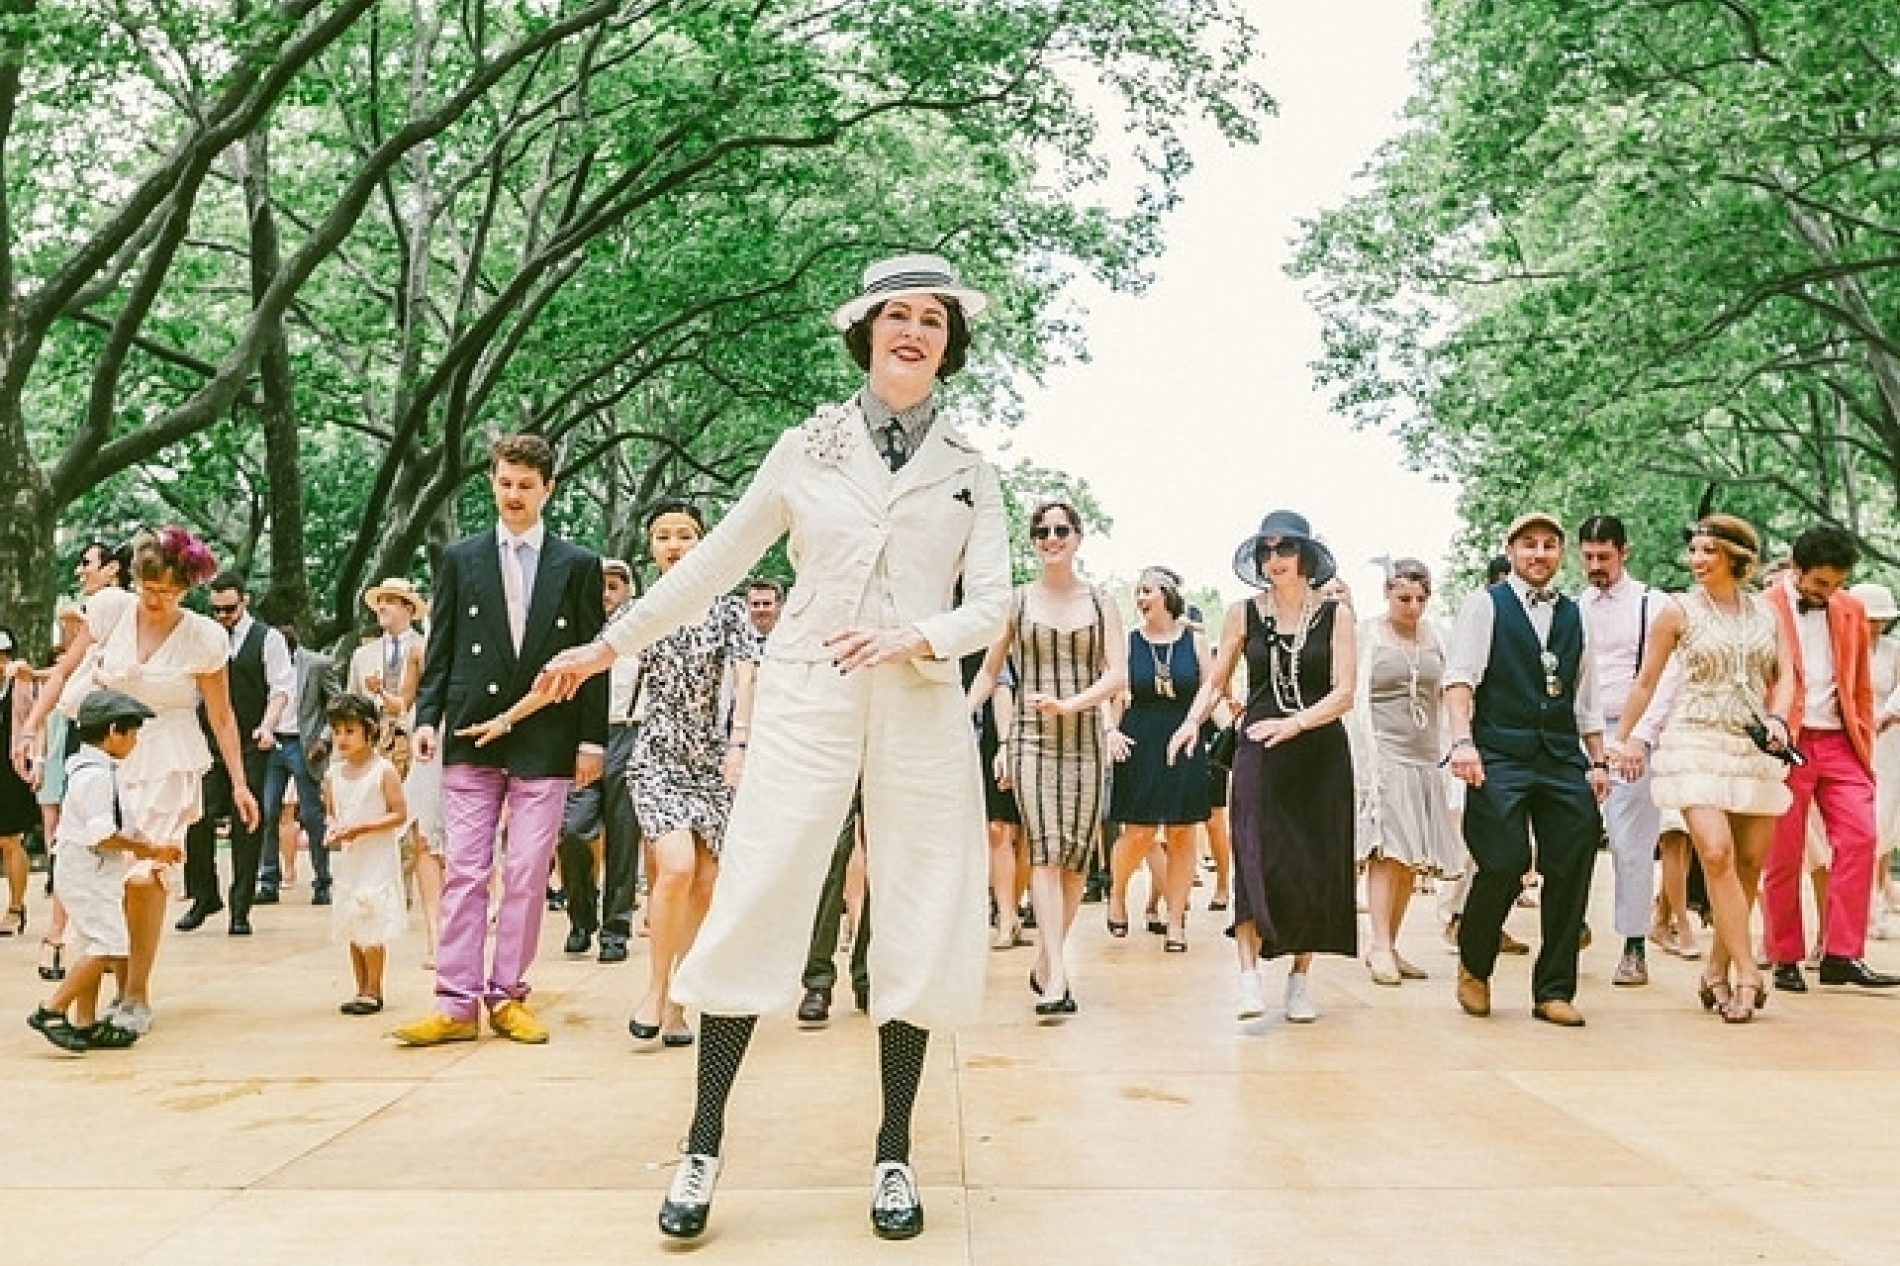 The Jazz Age Lawn Party governors island activities